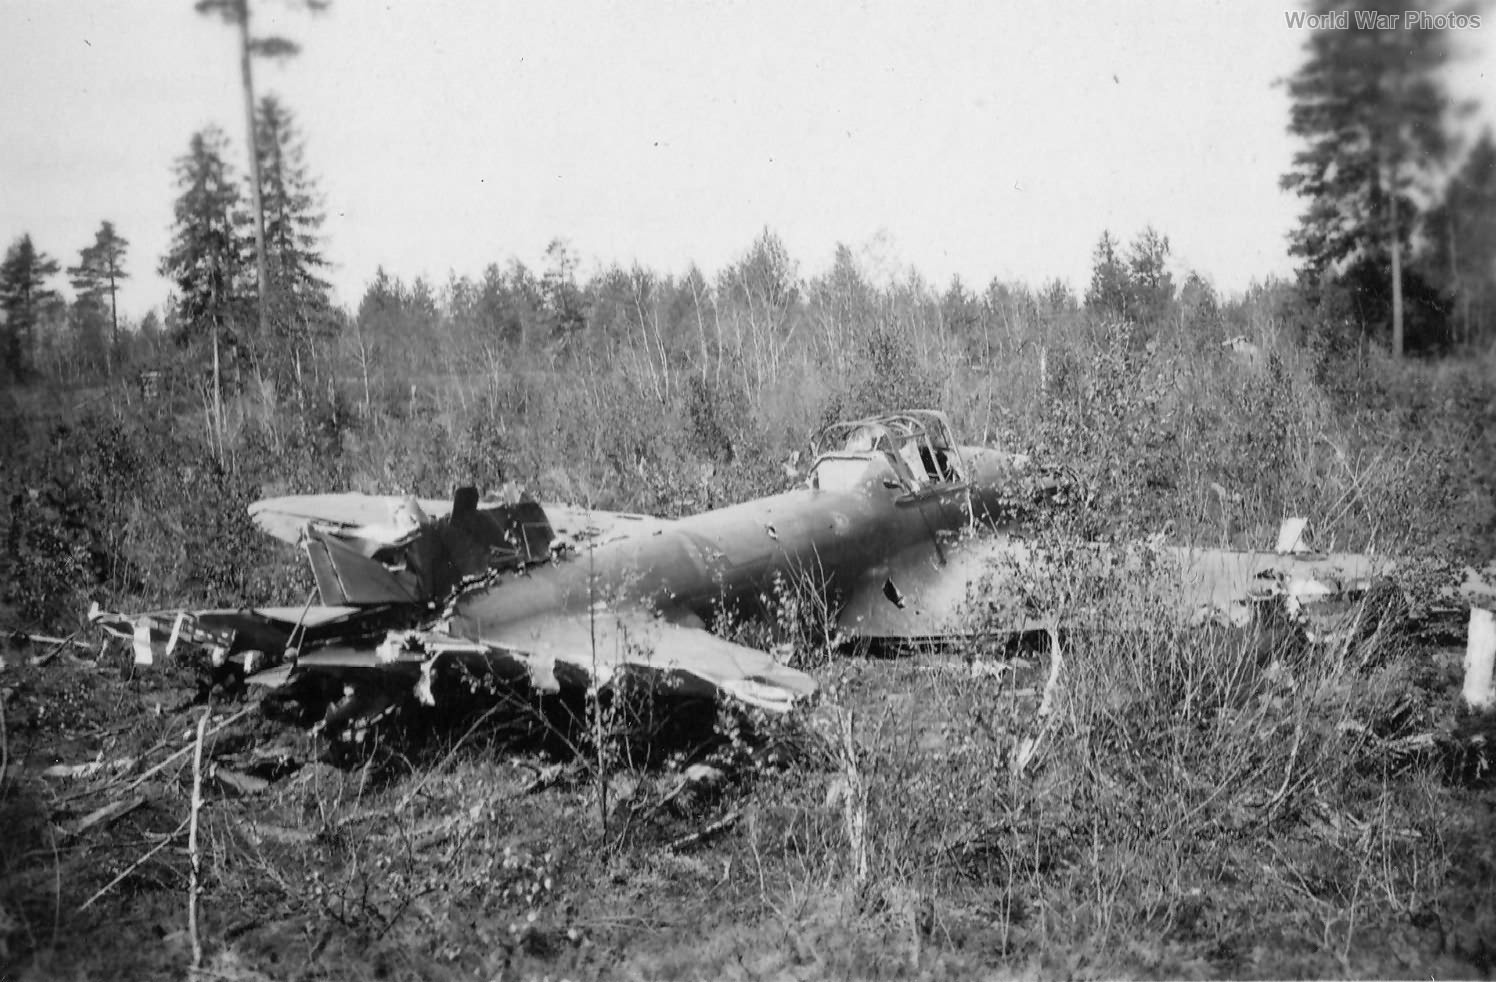 Wreck of Il2